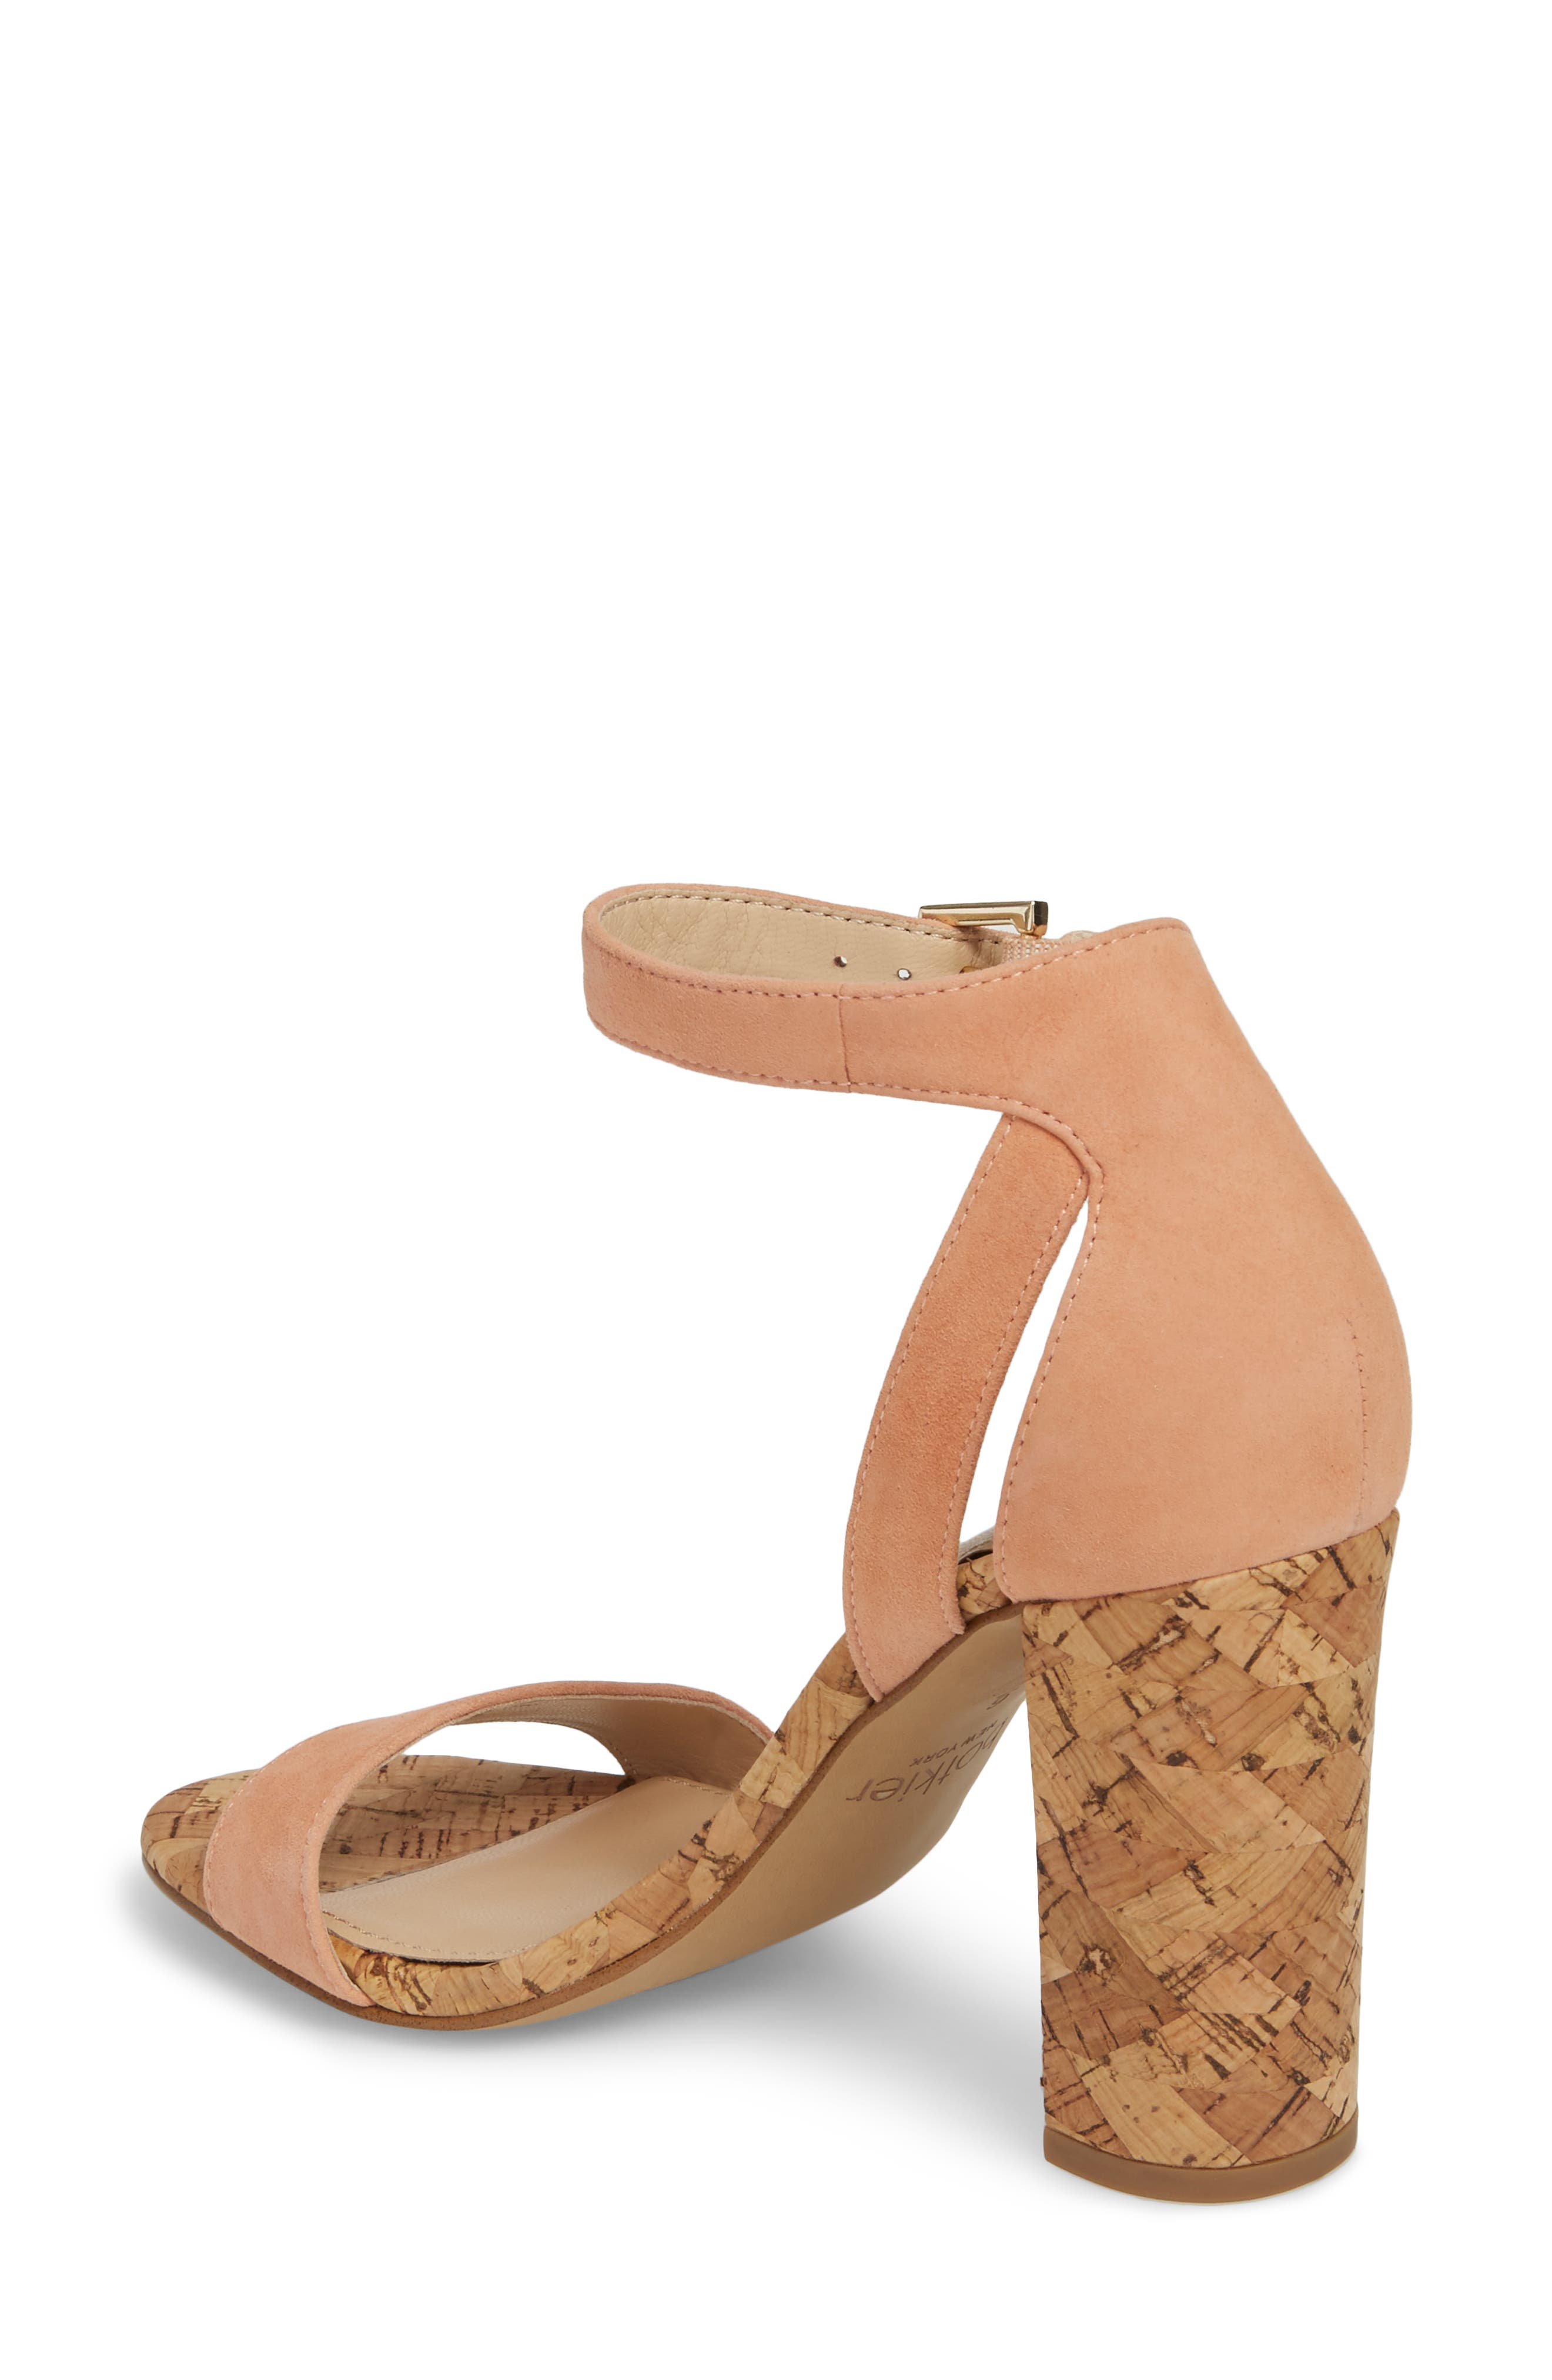 Gianna Ankle Strap Sandal,                             Alternate thumbnail 2, color,                             Soft Peach Suede